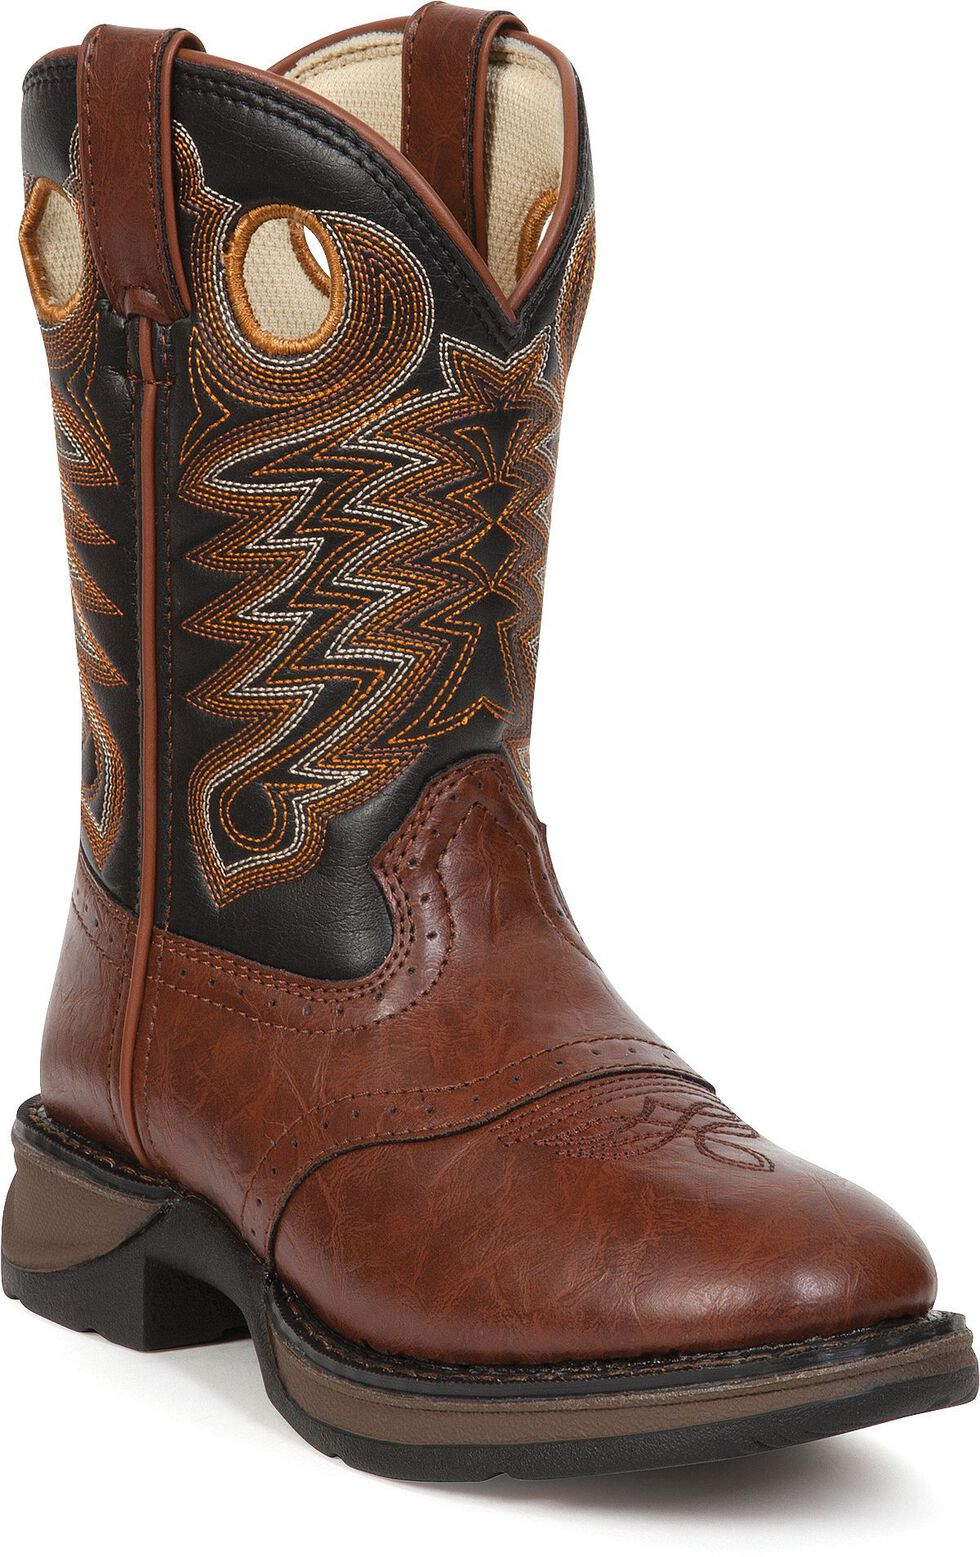 Durango Youth Saddle Vamp Lil' Durango Cowboy Boots - Round Toe, Chestnut, hi-res